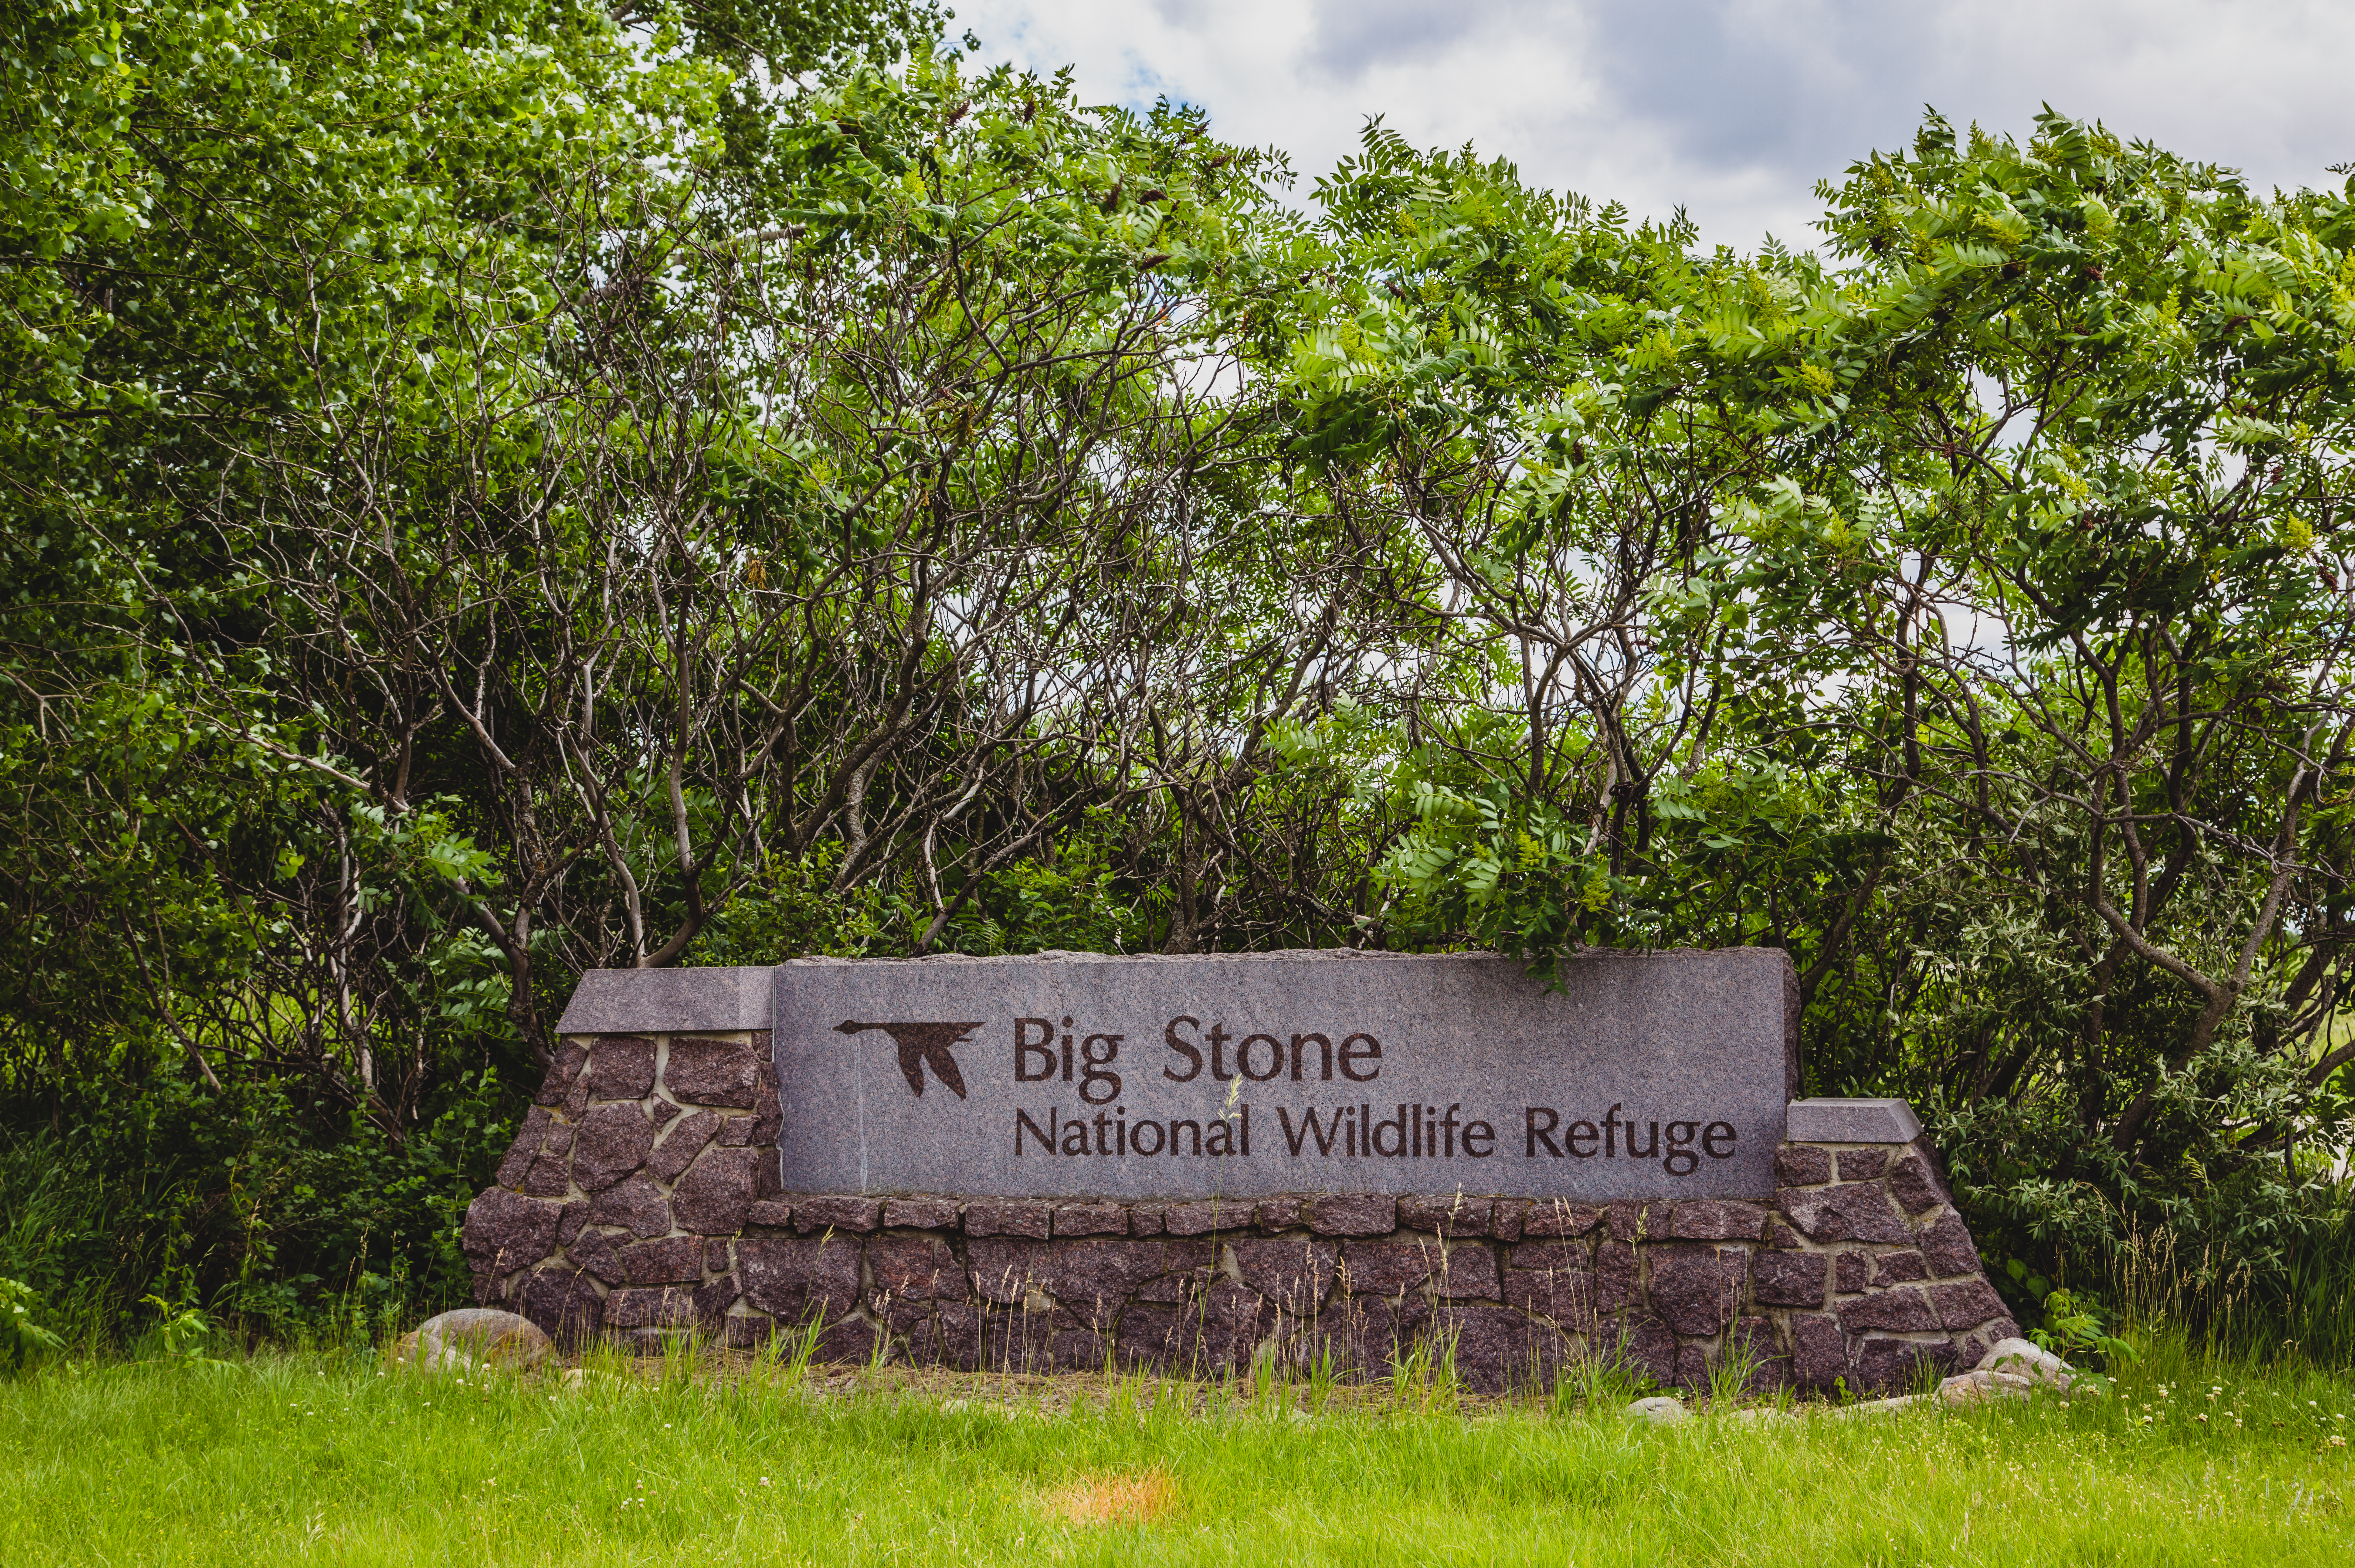 Big Stone National Wildlife Refuge - Wikipedia